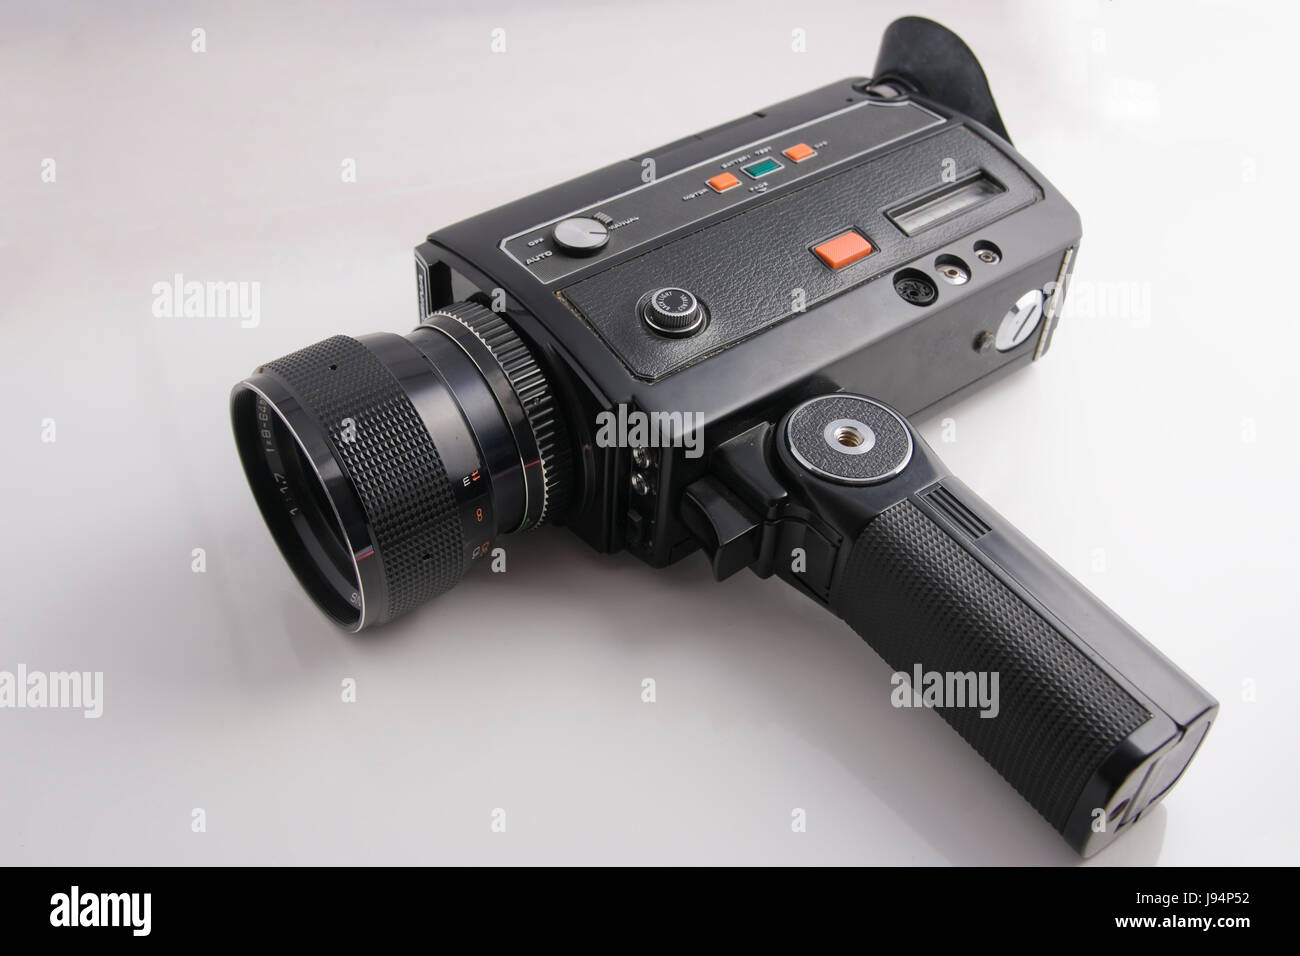 cine camera, film, movie, movies, substandard film, video camera, analogous, - Stock Image